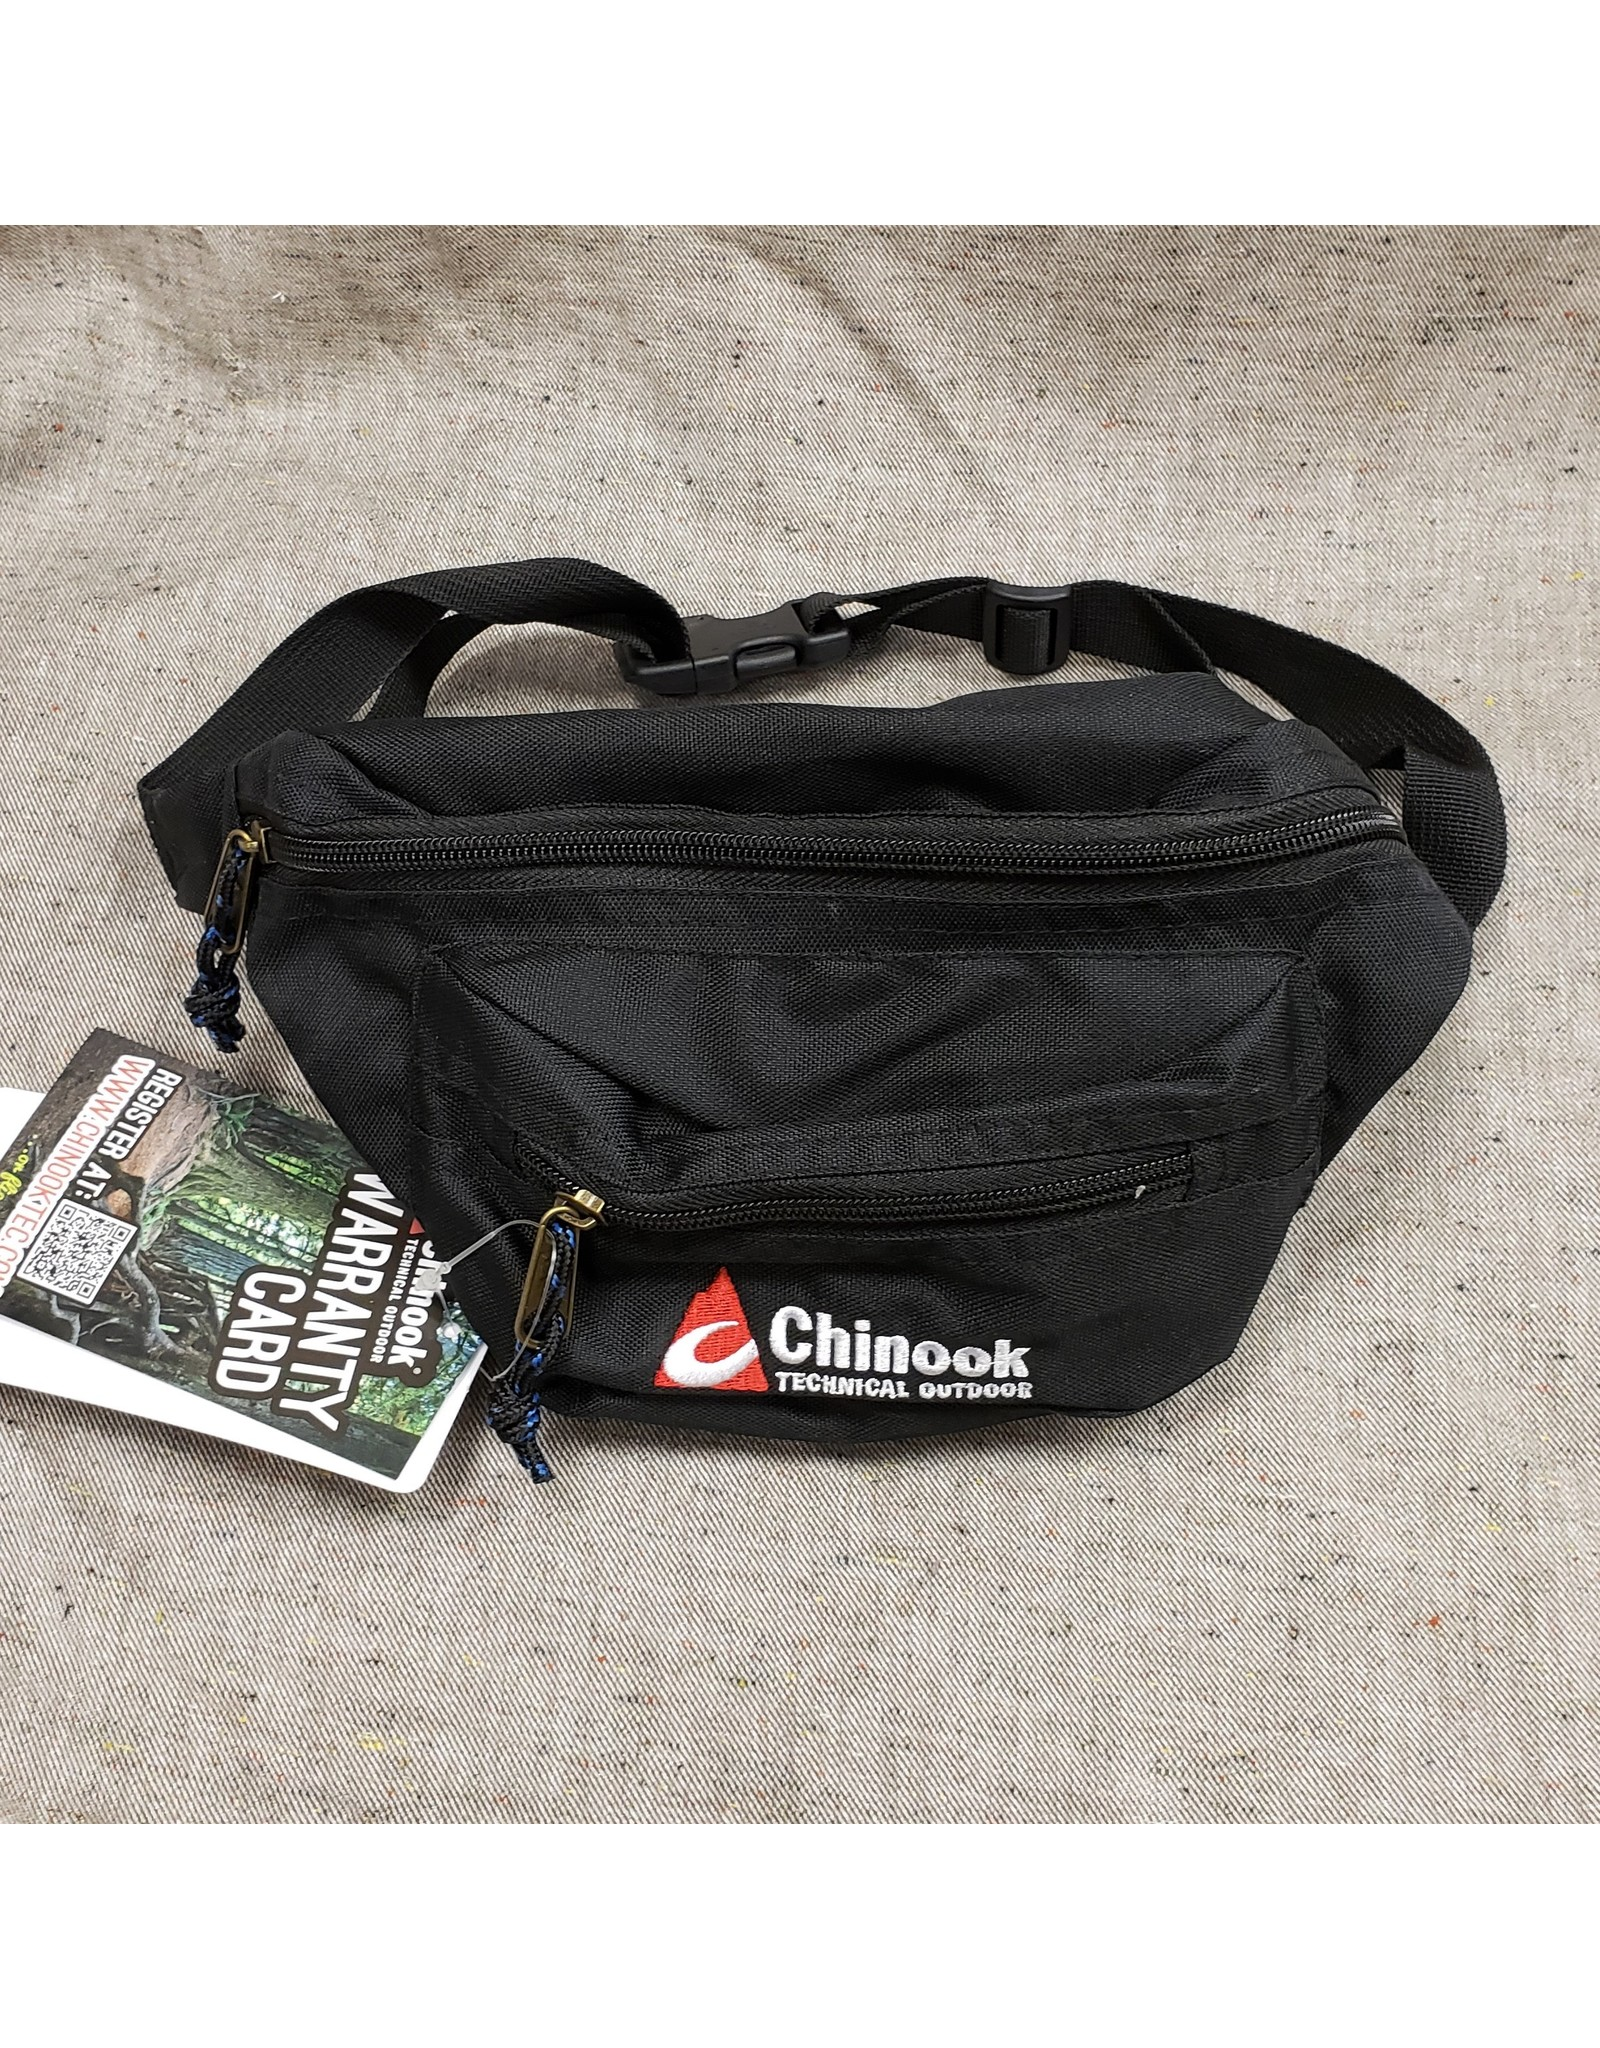 CHINOOK TECHNICAL OUTDOOR CHINOOK BLACK WAIST POUCH - WALLET AND KEY HOLDER